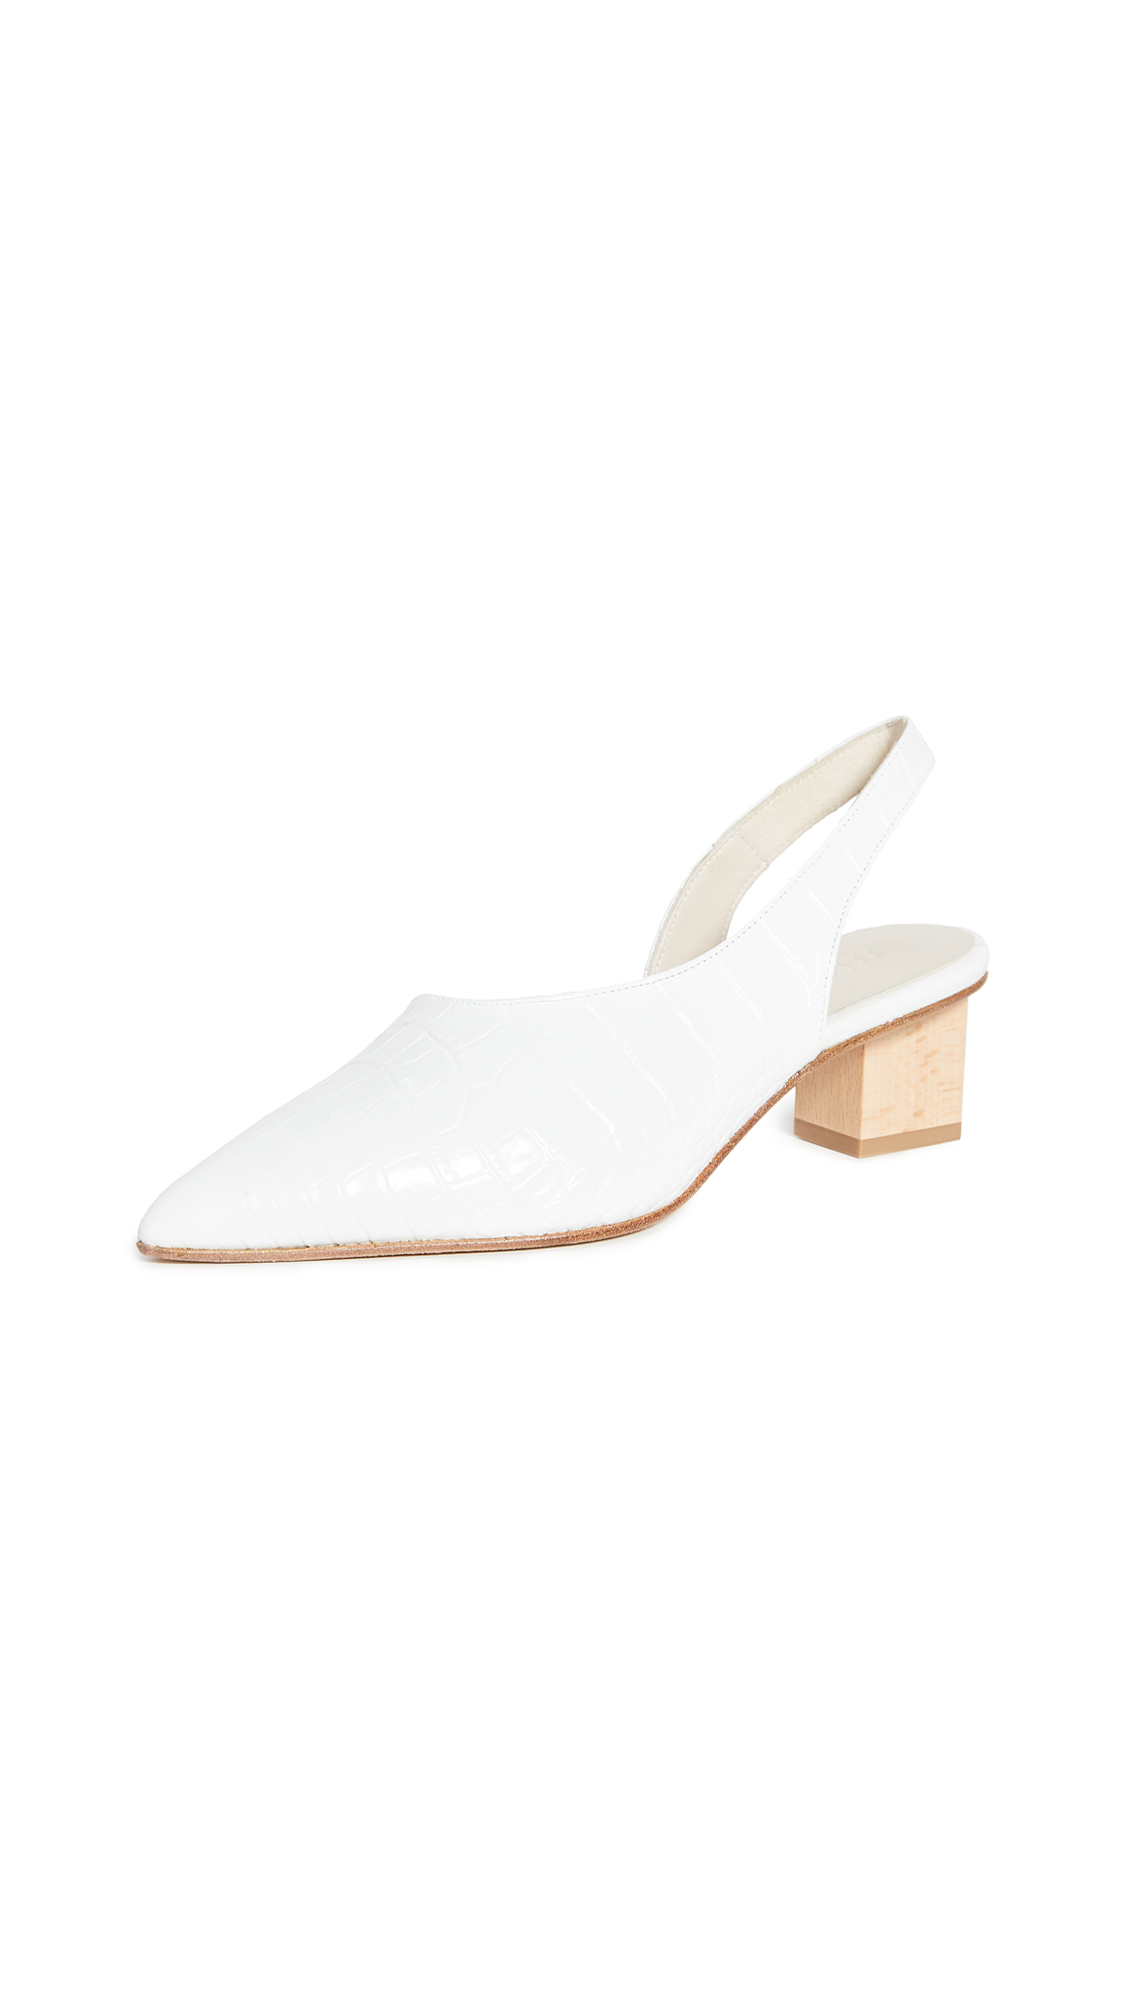 Freda Salvador Marigold Asymmetrical Mid Heel Pumps – 30% Off Sale